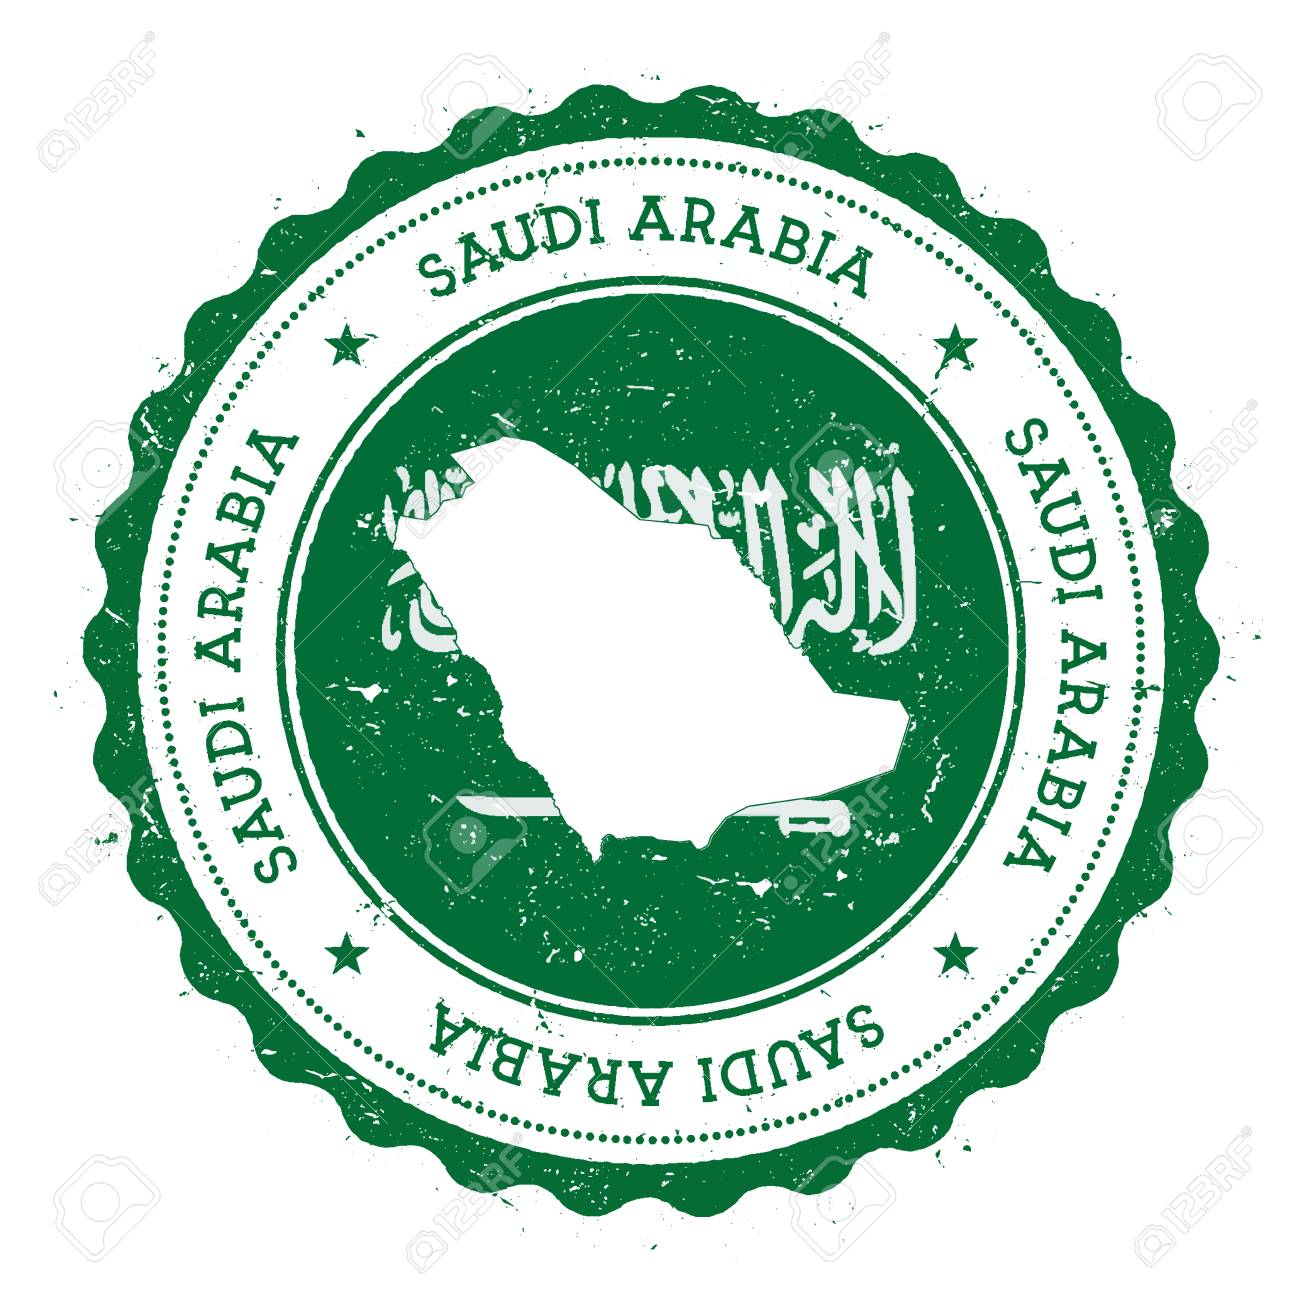 Saudi State Travel Map on state vote map, state debt map, state route map, state high points map, state migration map, state marketplace map, state plane map, state climate map, state name map, state gas prices map, state reference map,